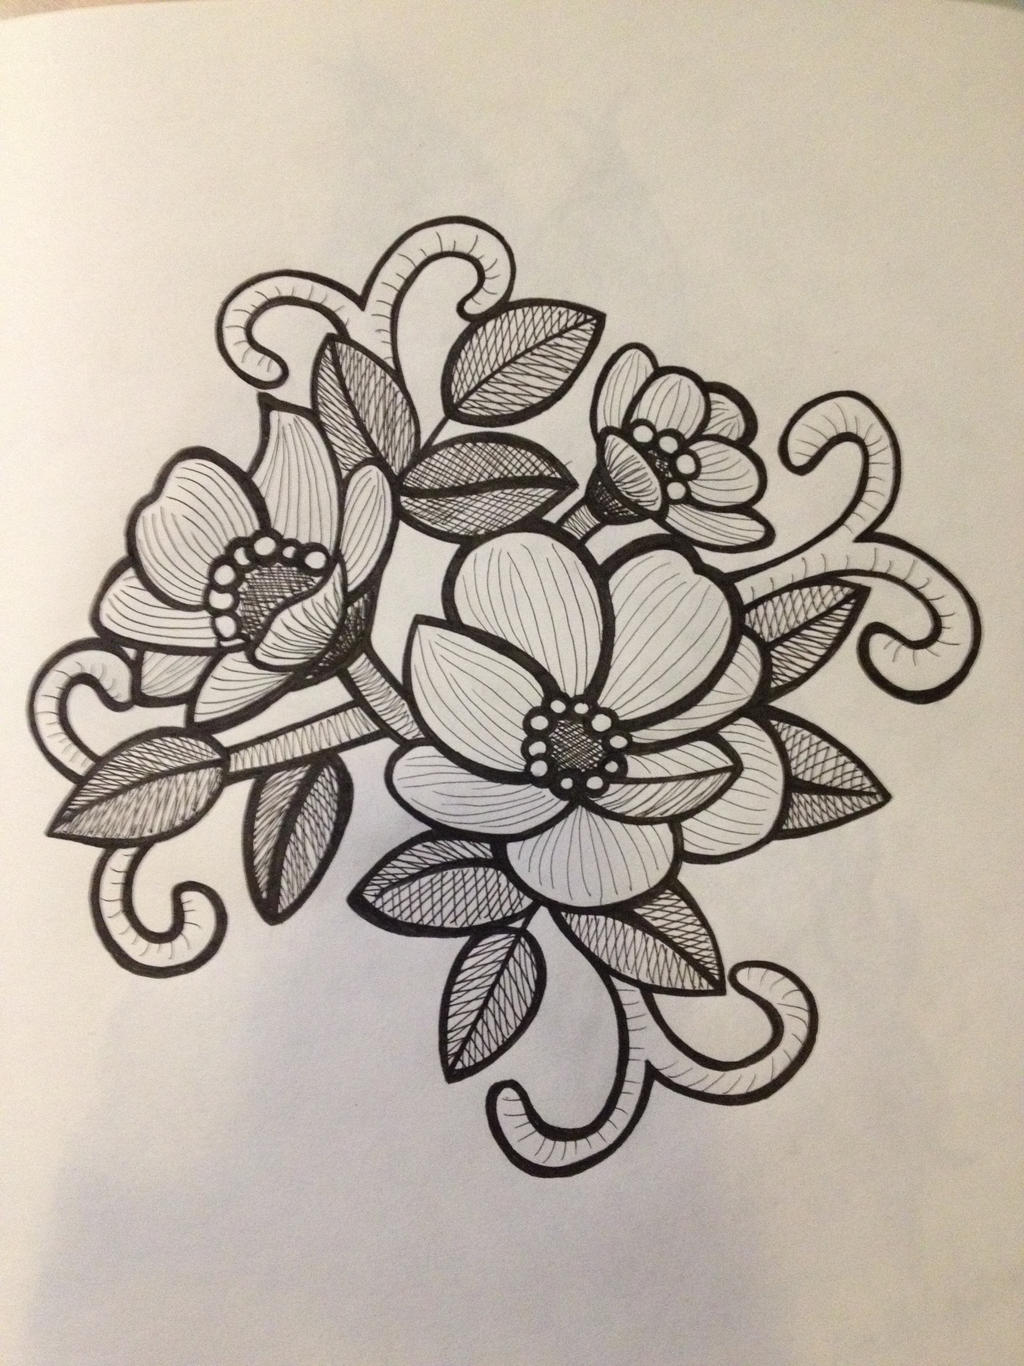 Flower bouquet Drawing by Stylsvig on DeviantArt